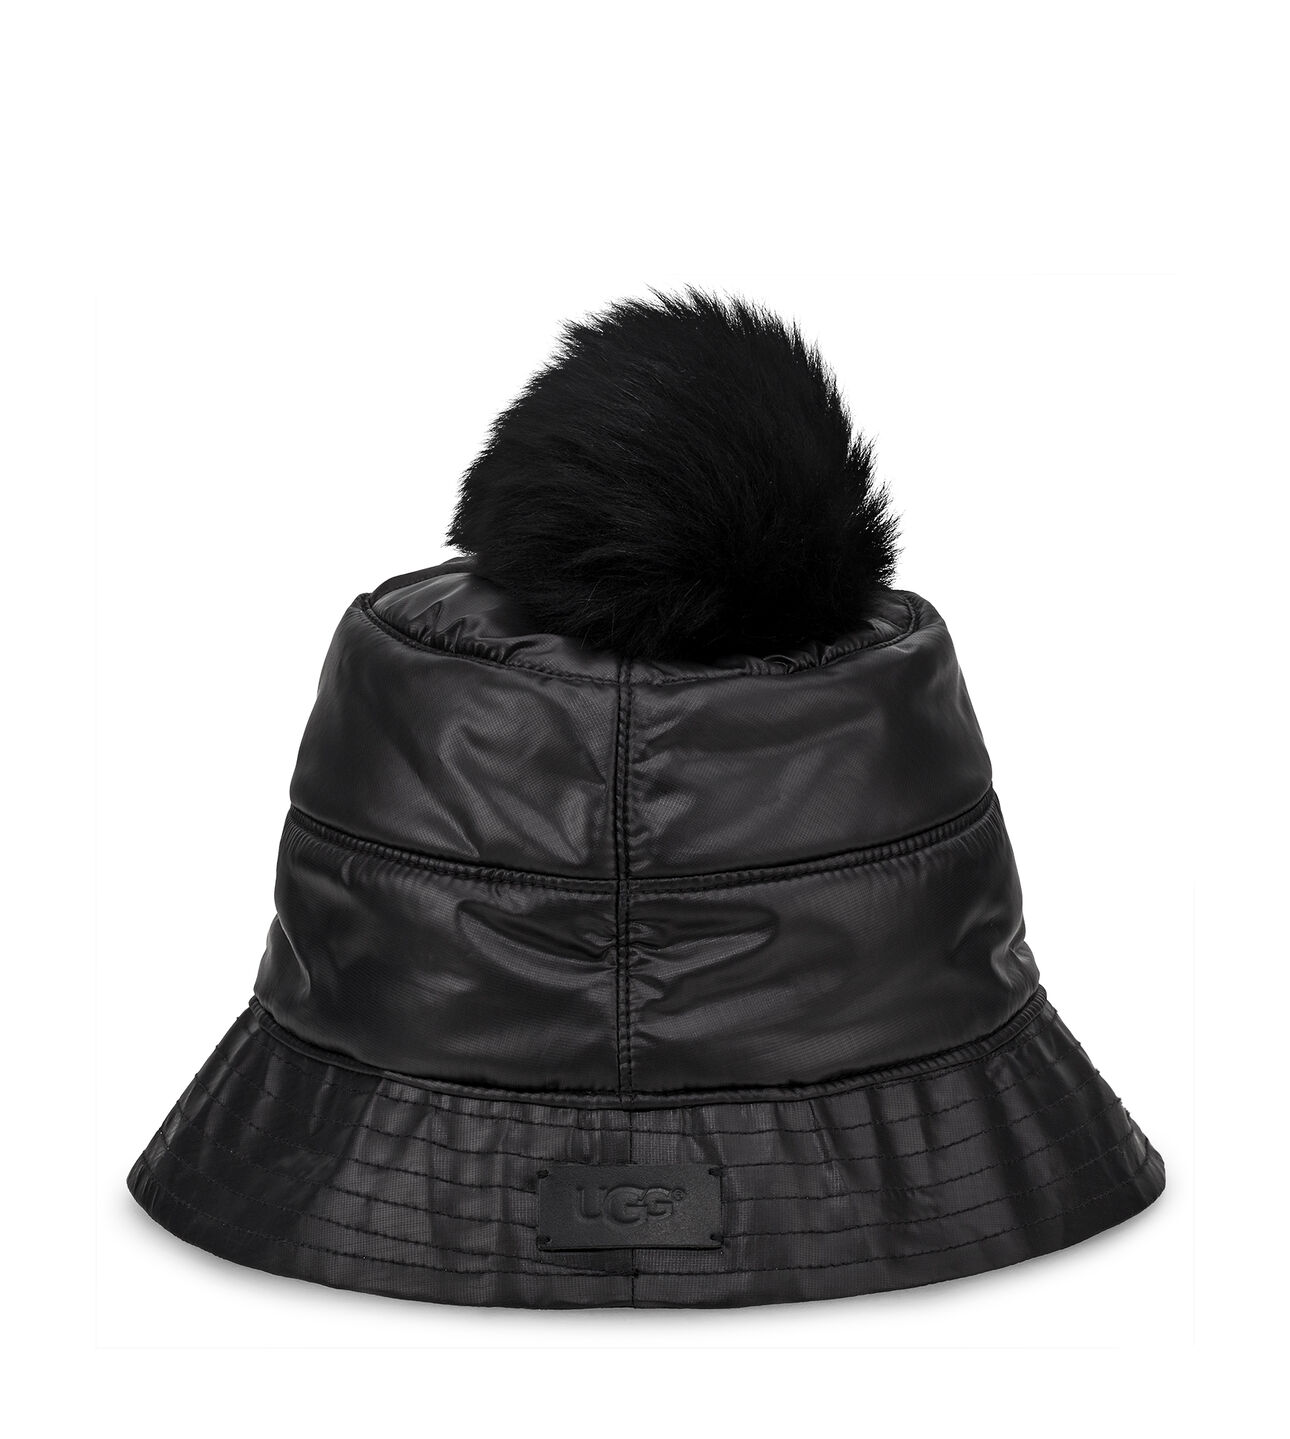 69e074a87aa All Weather Bucket Hat - Ugg (US)